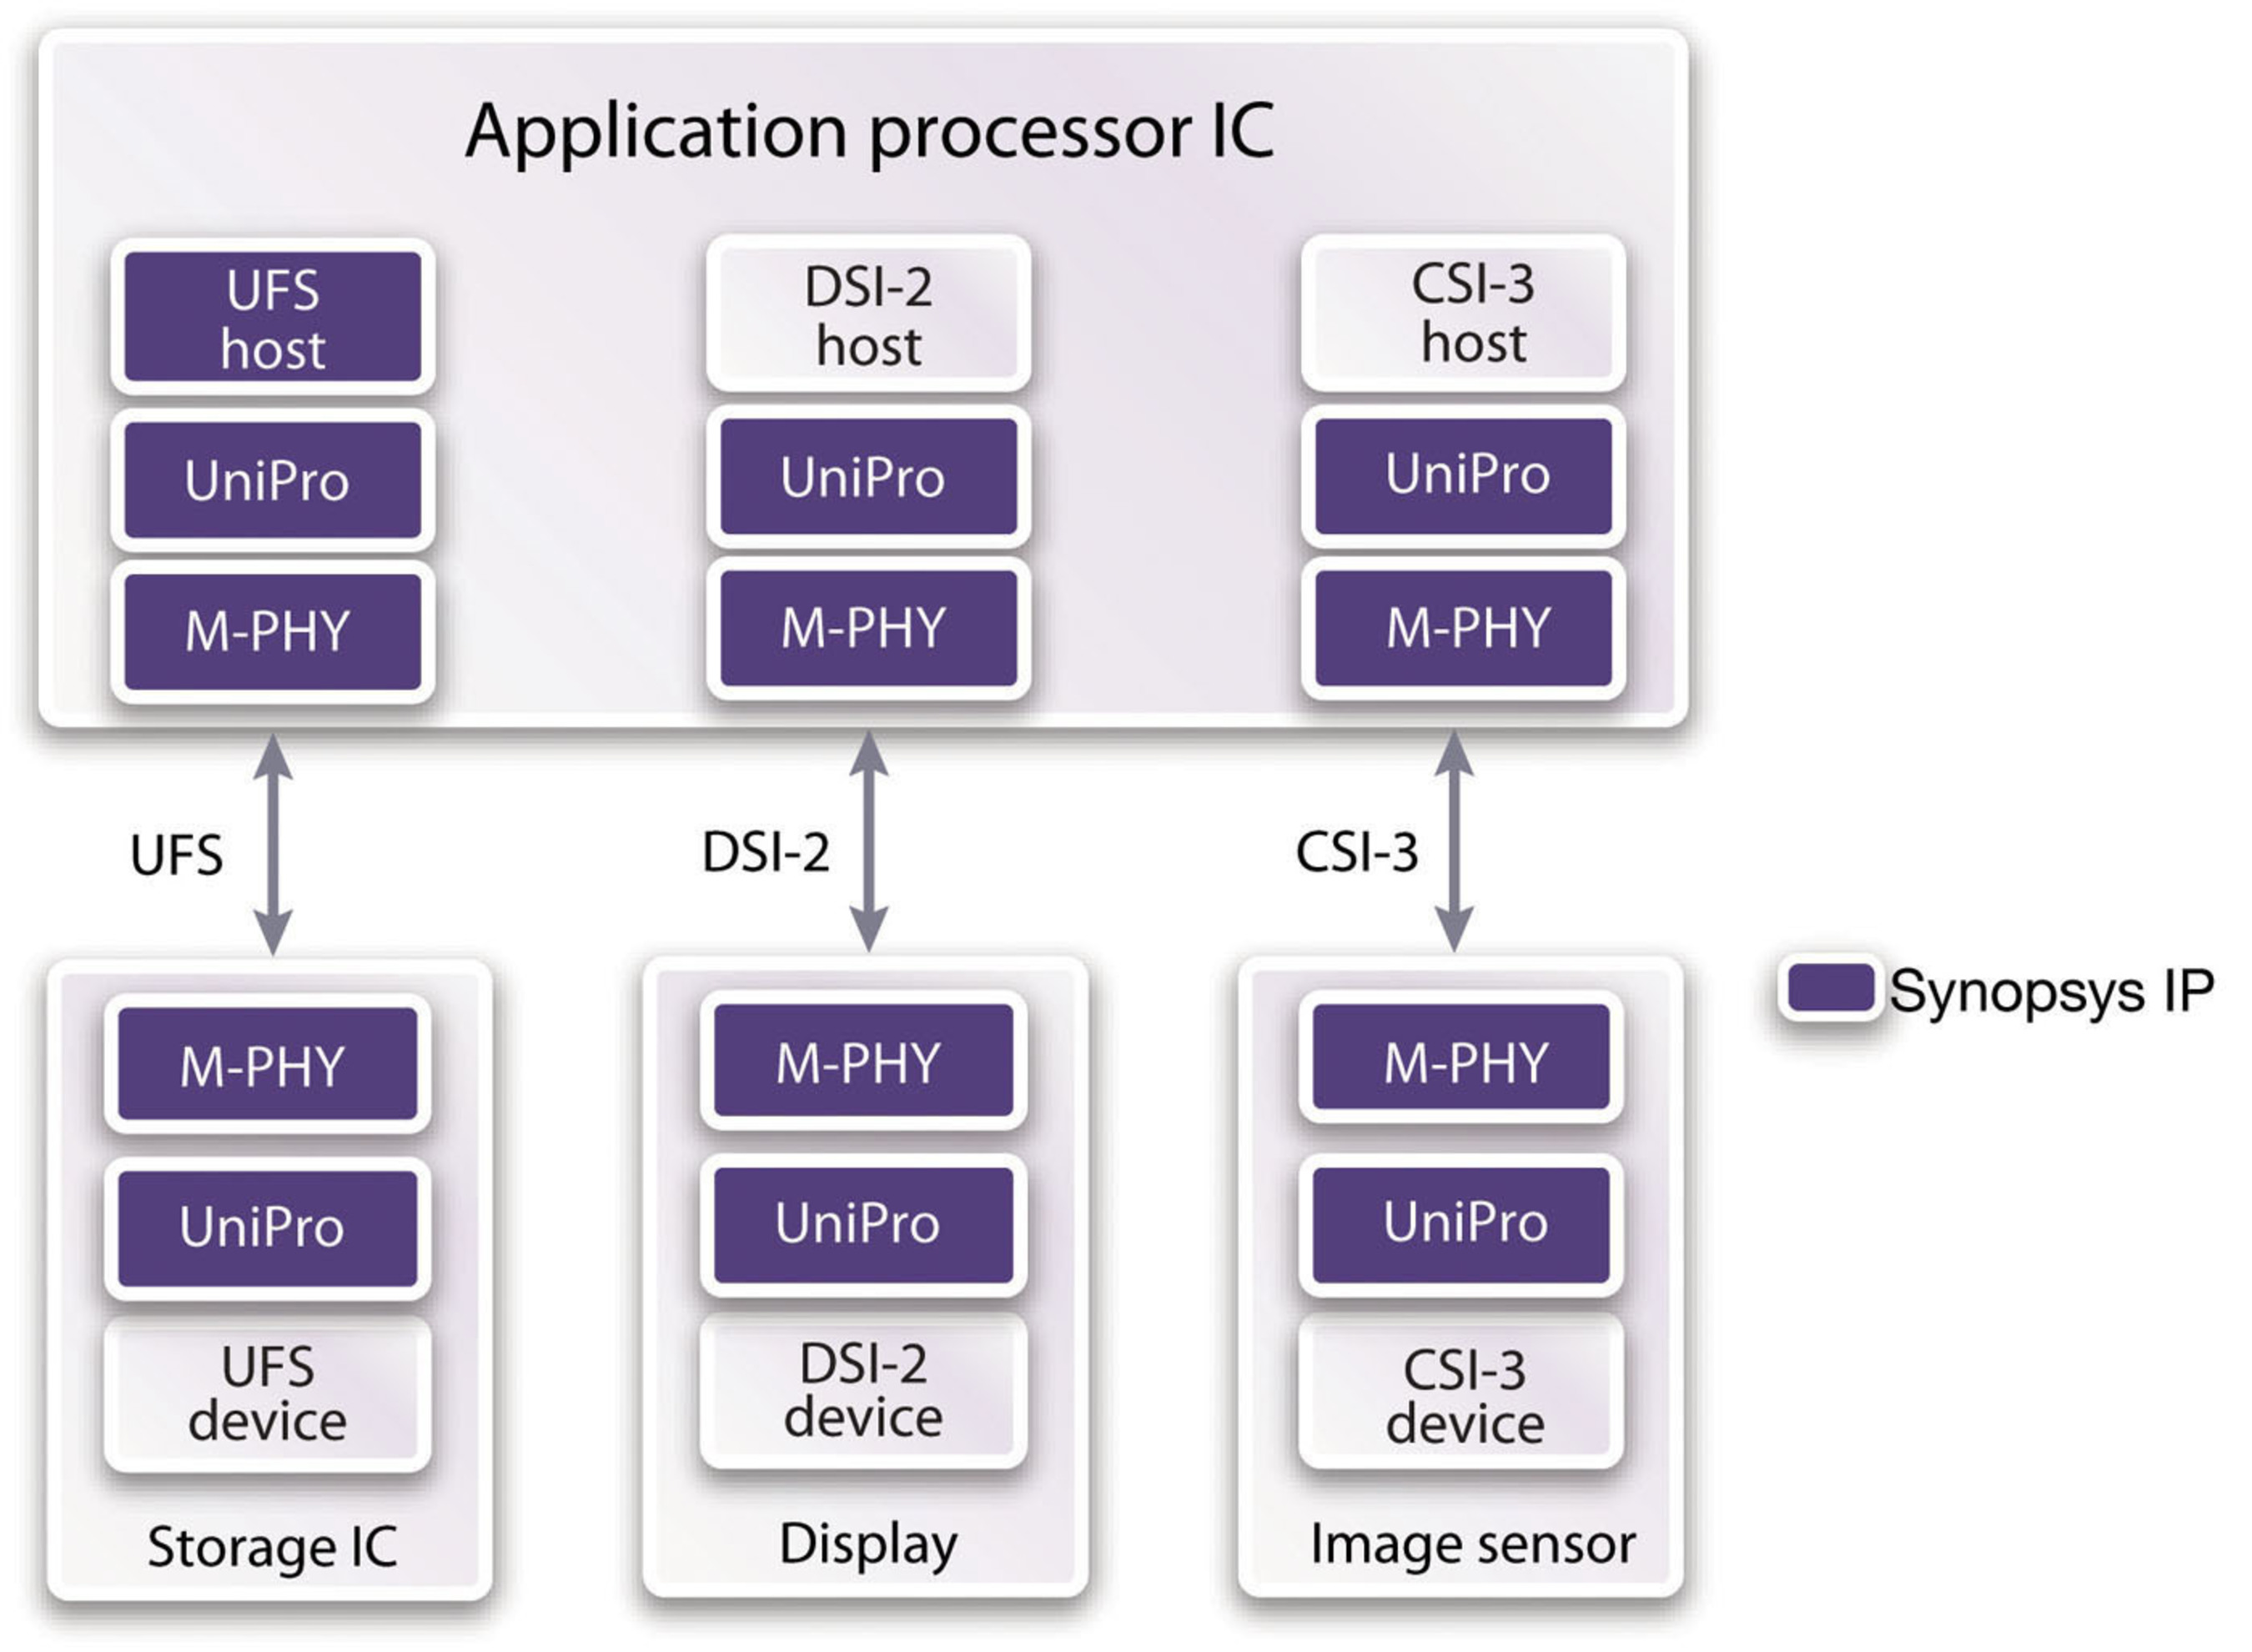 Synopsys Extends Mobile Storage Leadership with UFS and MIPI Alliance UniPro Controller IP